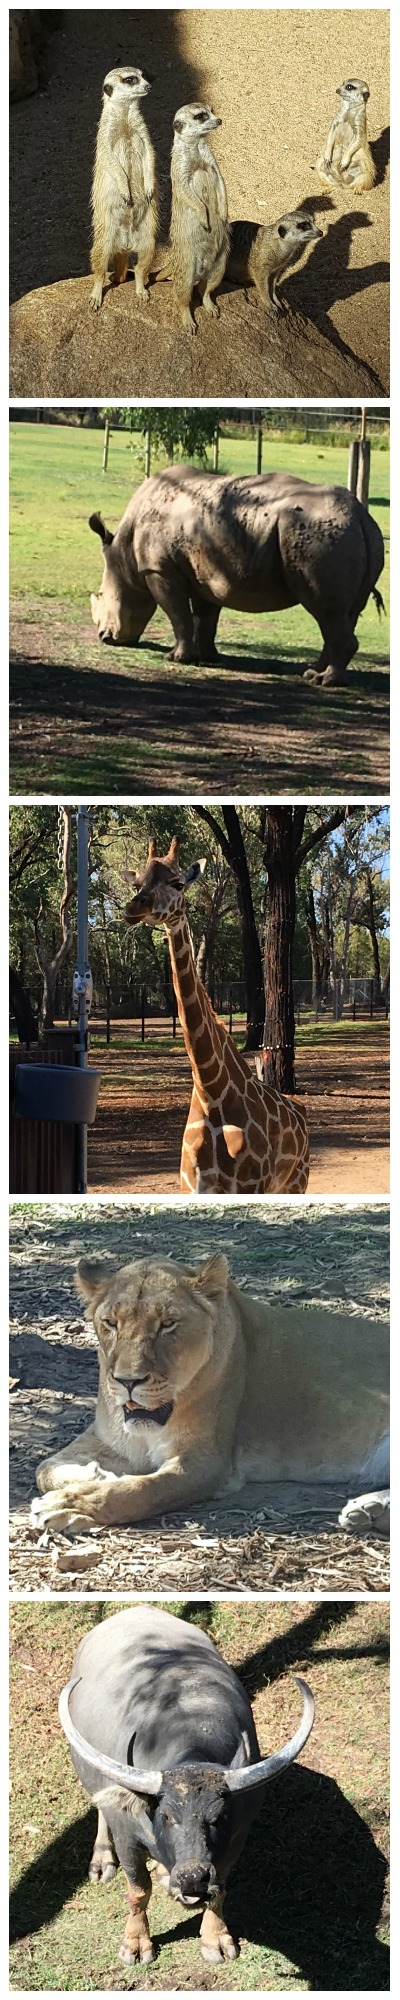 If you're looking for the best things to do while visiting Dubbo NSW you must make the Taronga Western Plains Zoo your first stop.